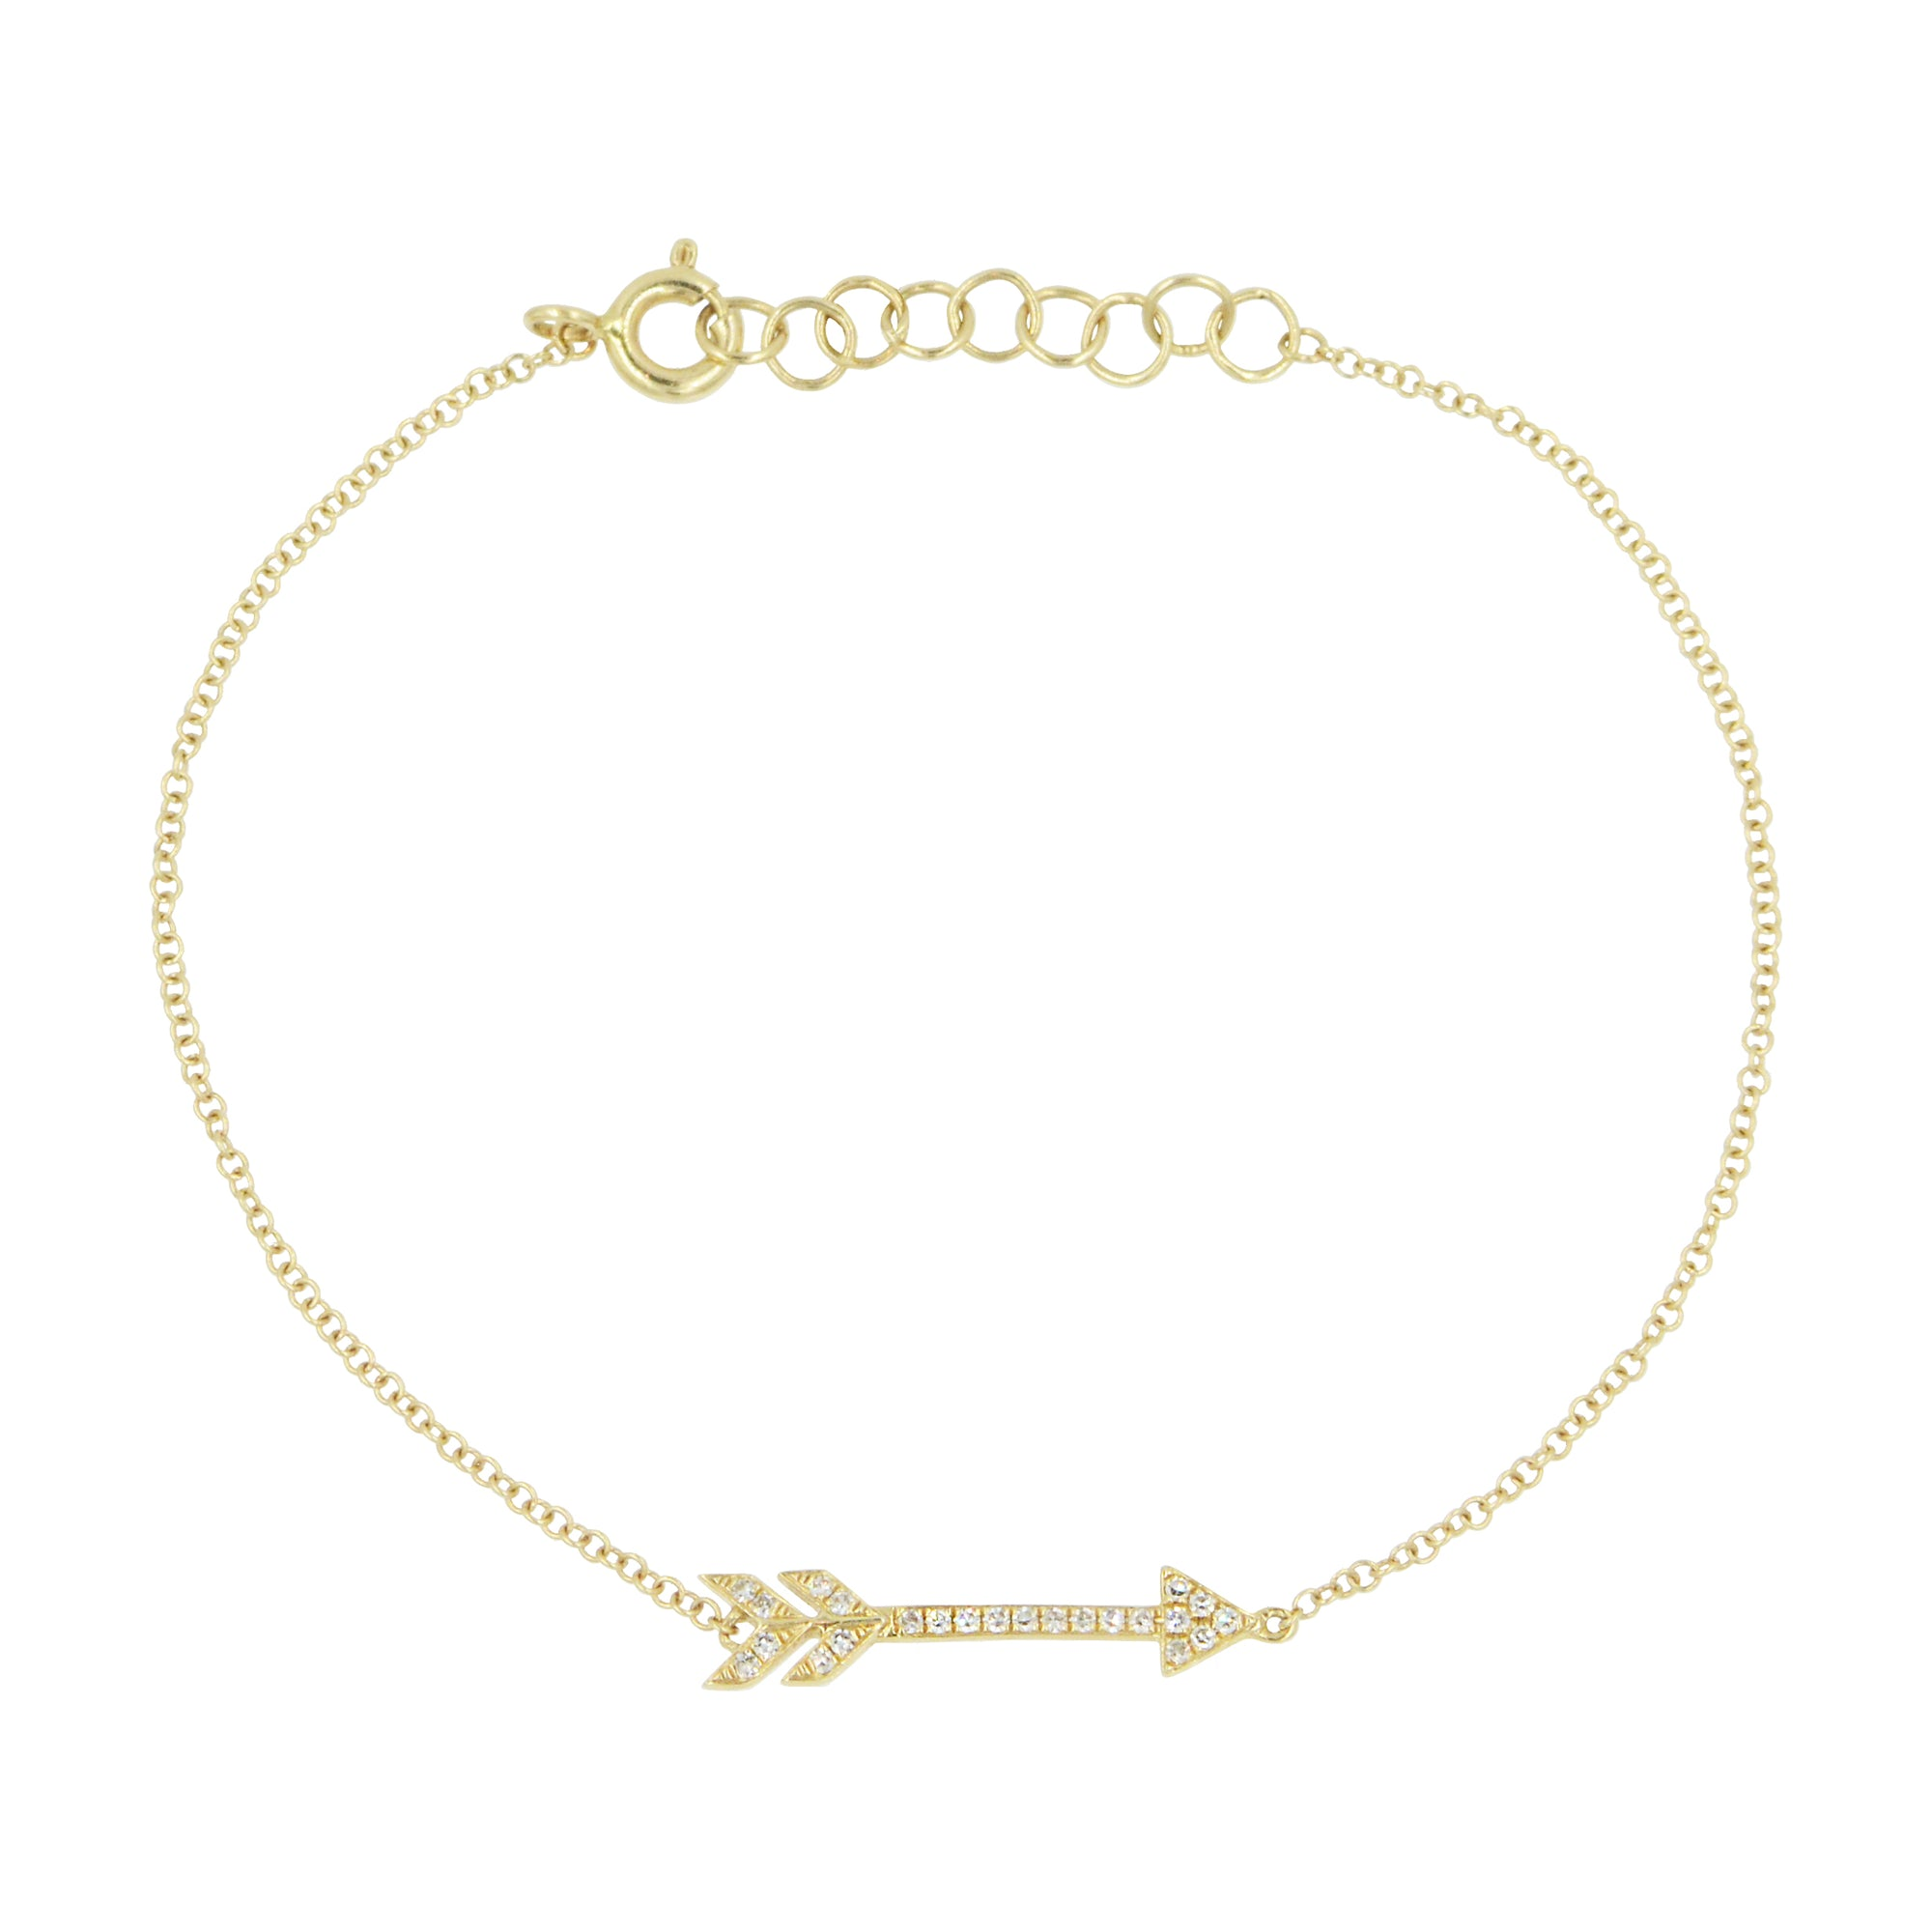 Diamond Arrow Bracelet in 14k Gold With Adjustable Clasp